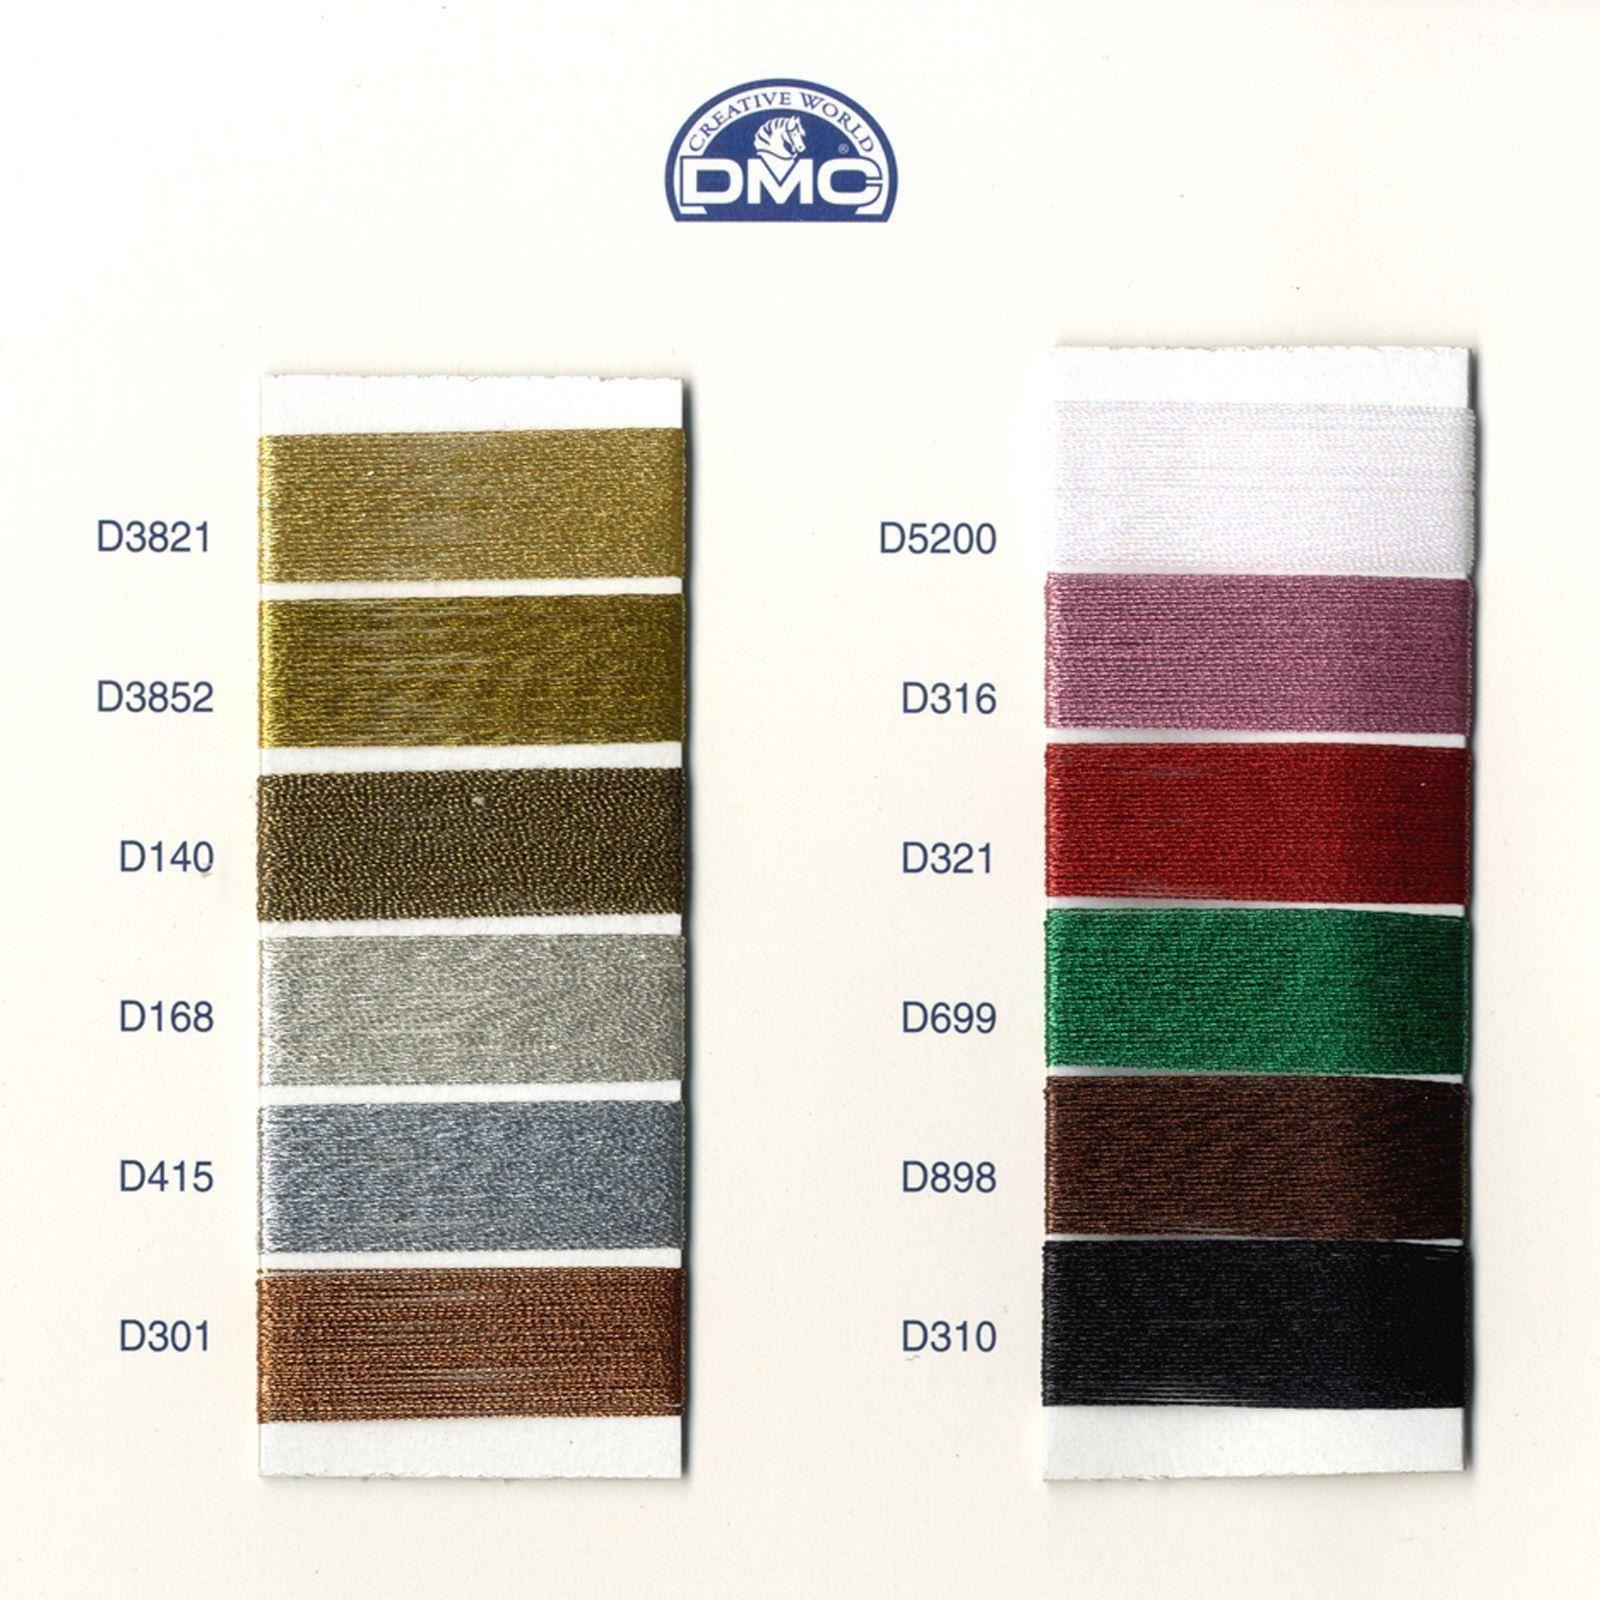 DMC-Diamant-Metallic-Embroidery-Thread-35m-Spool-Cross-Stitch thumbnail 58